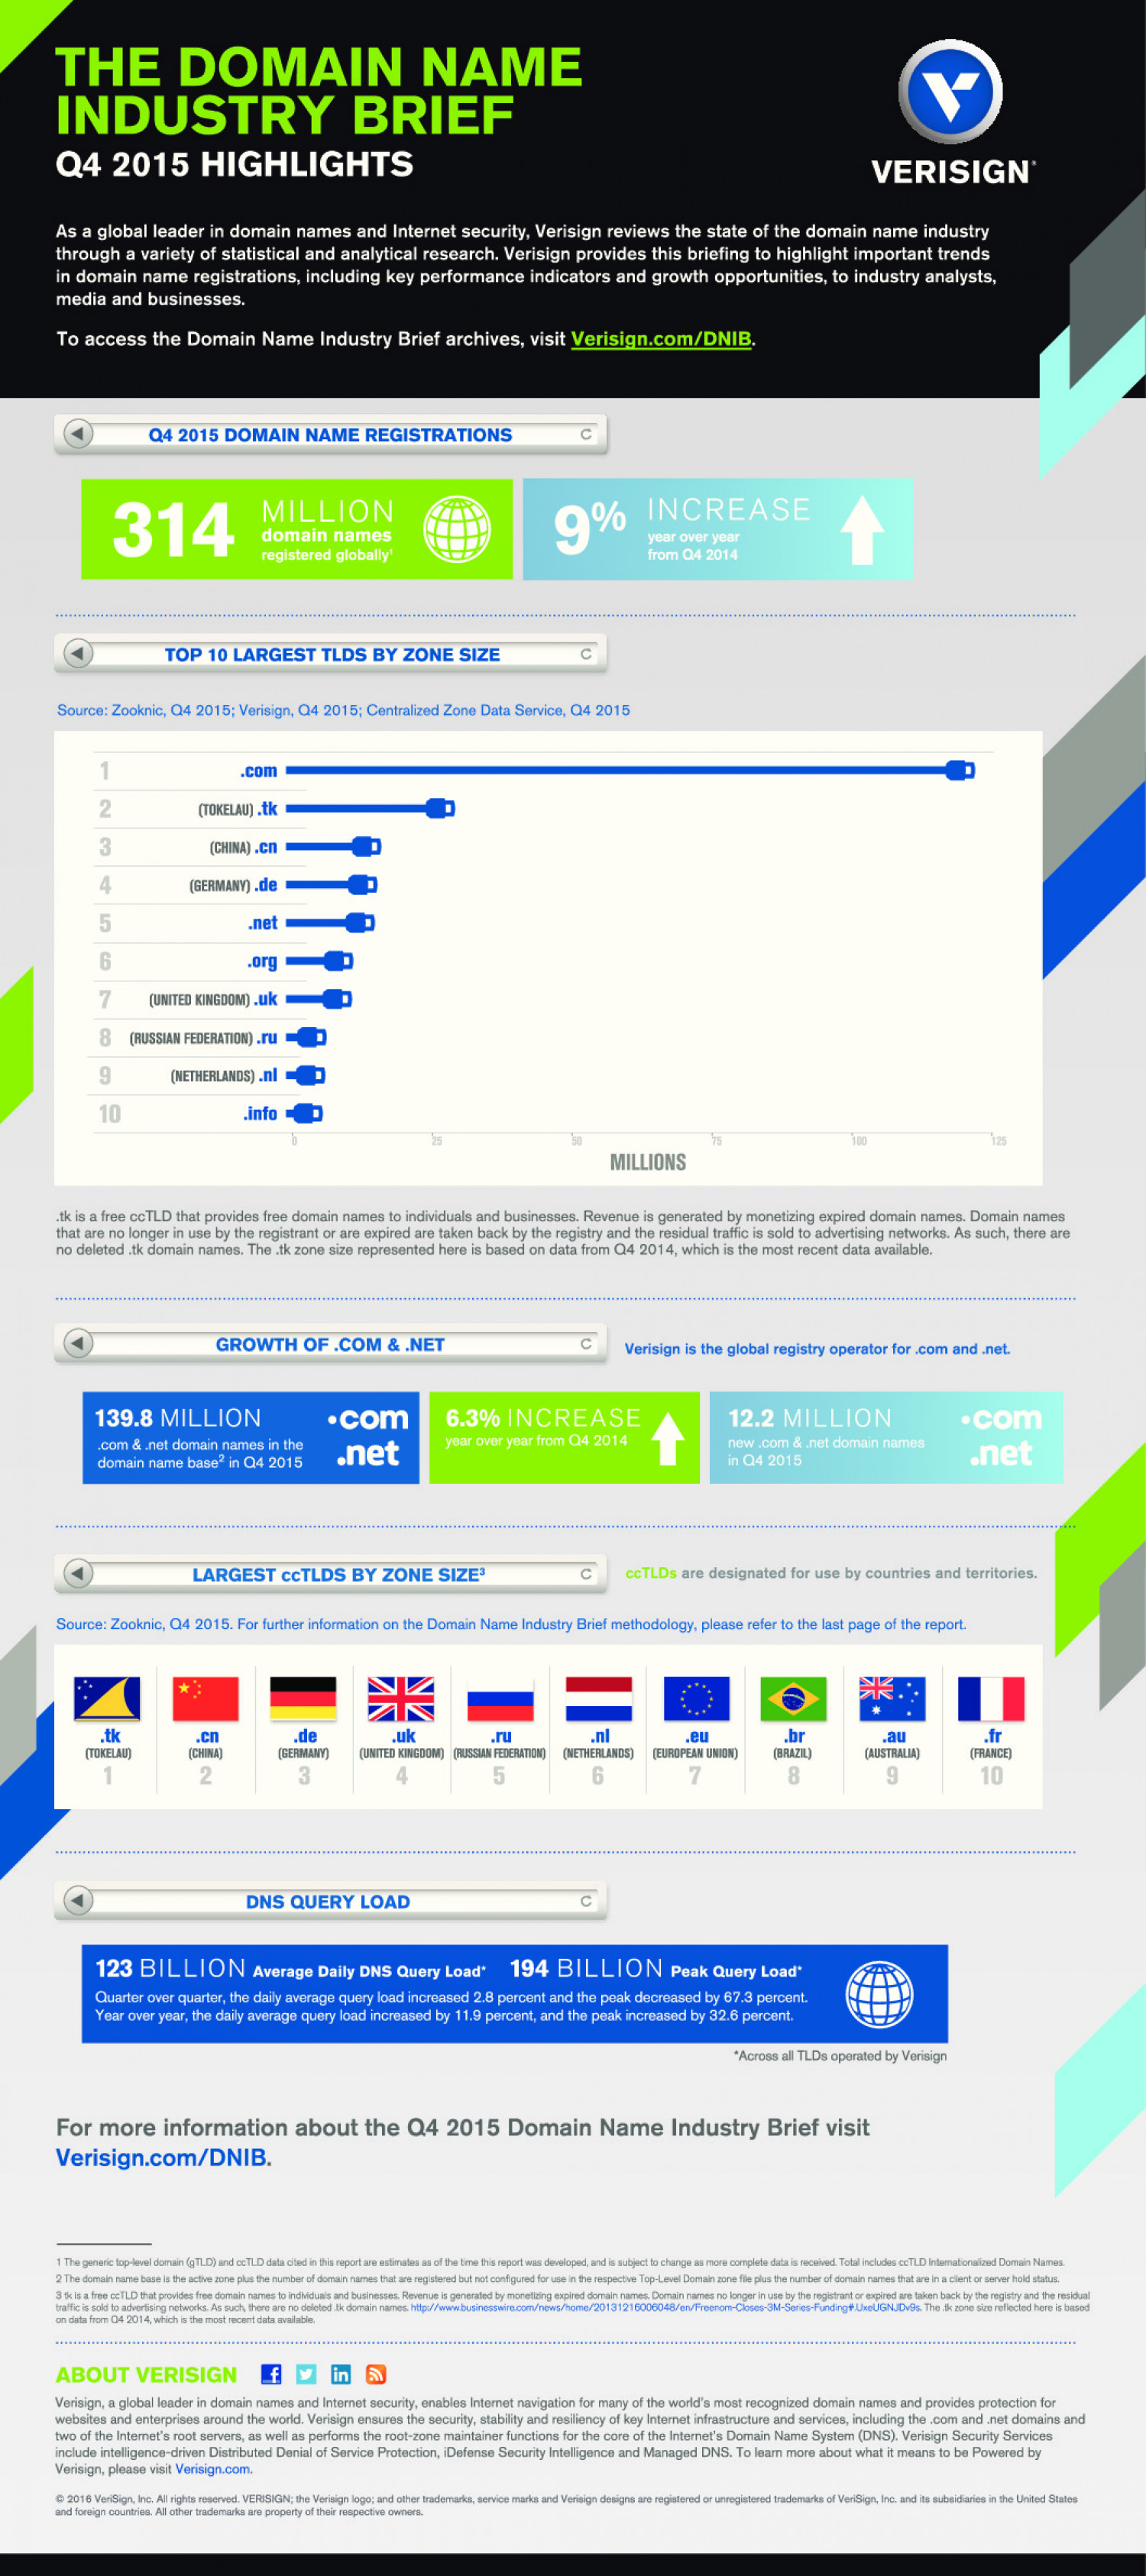 Q4 2015 Domain Name Industry Brief Infographic